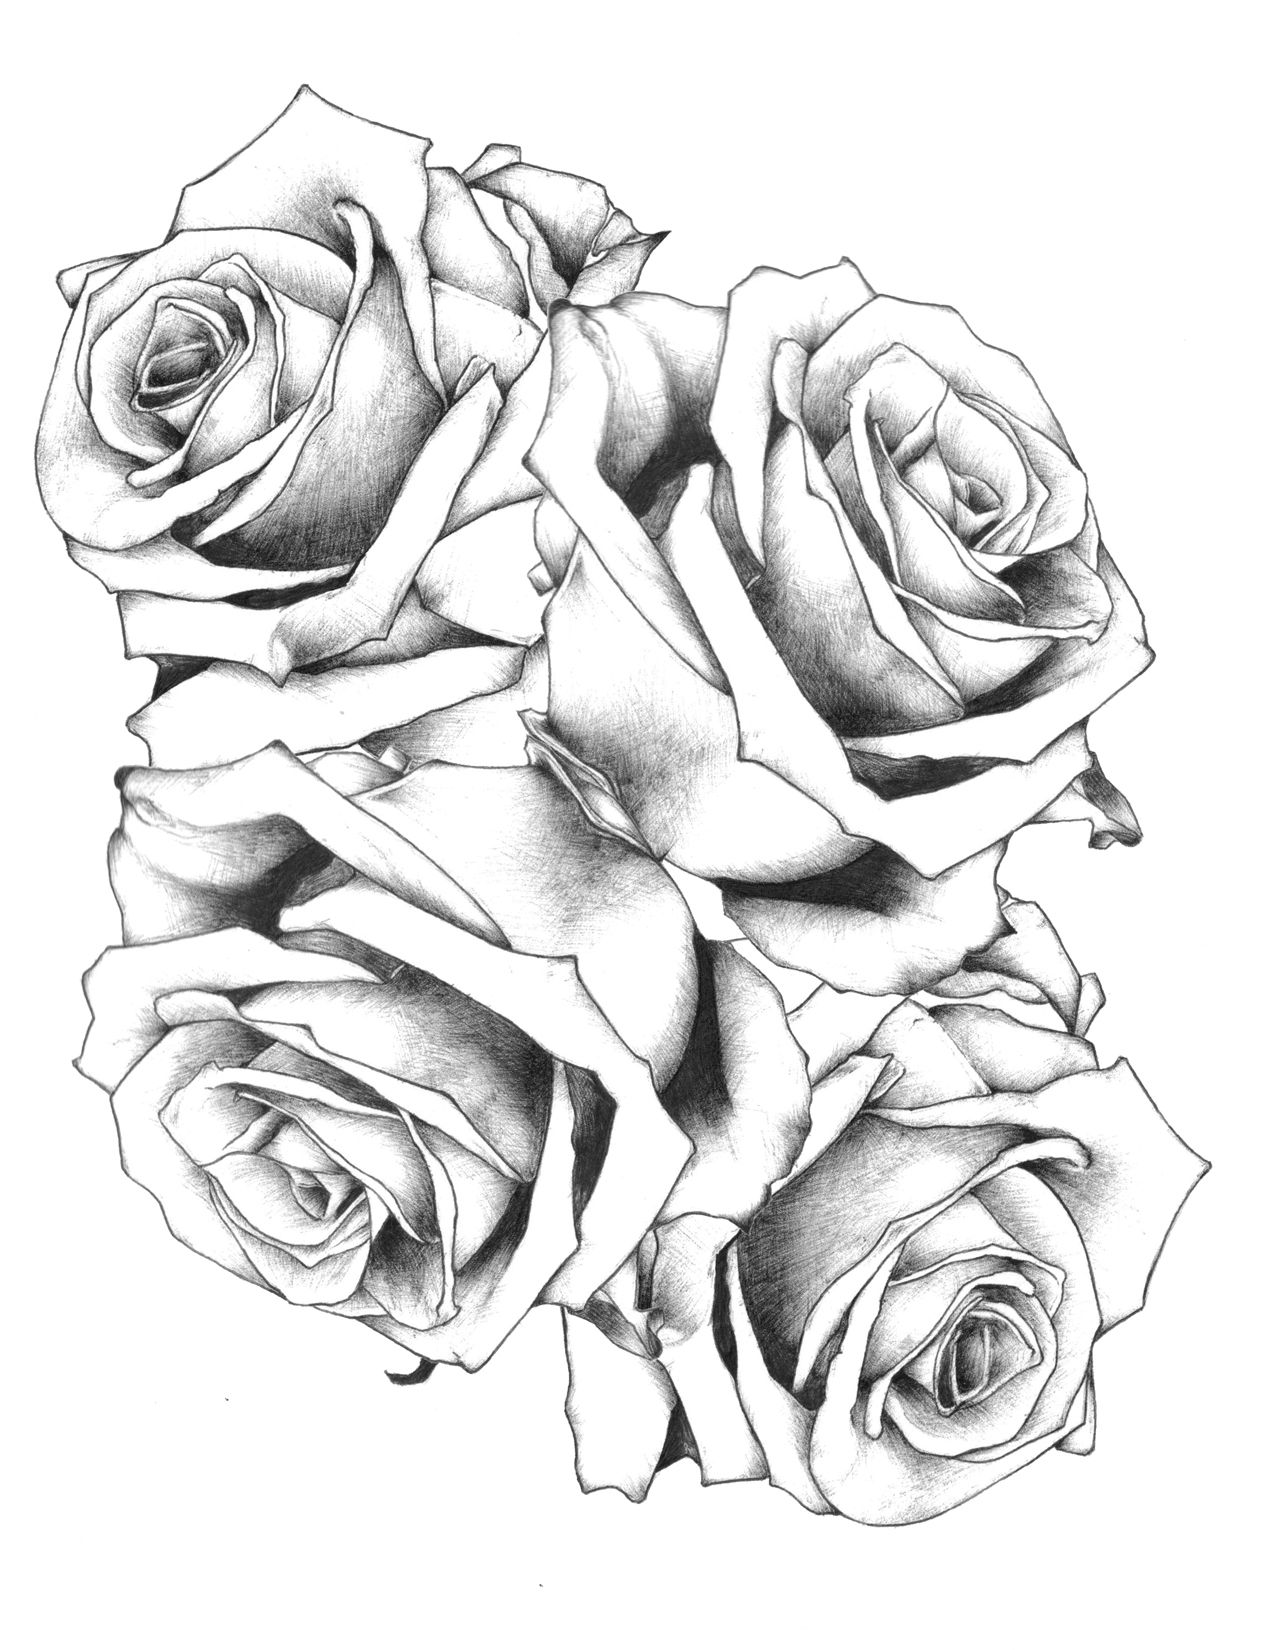 And Idea For Some Roses To Go With My Marilyn Monroe Tattoo